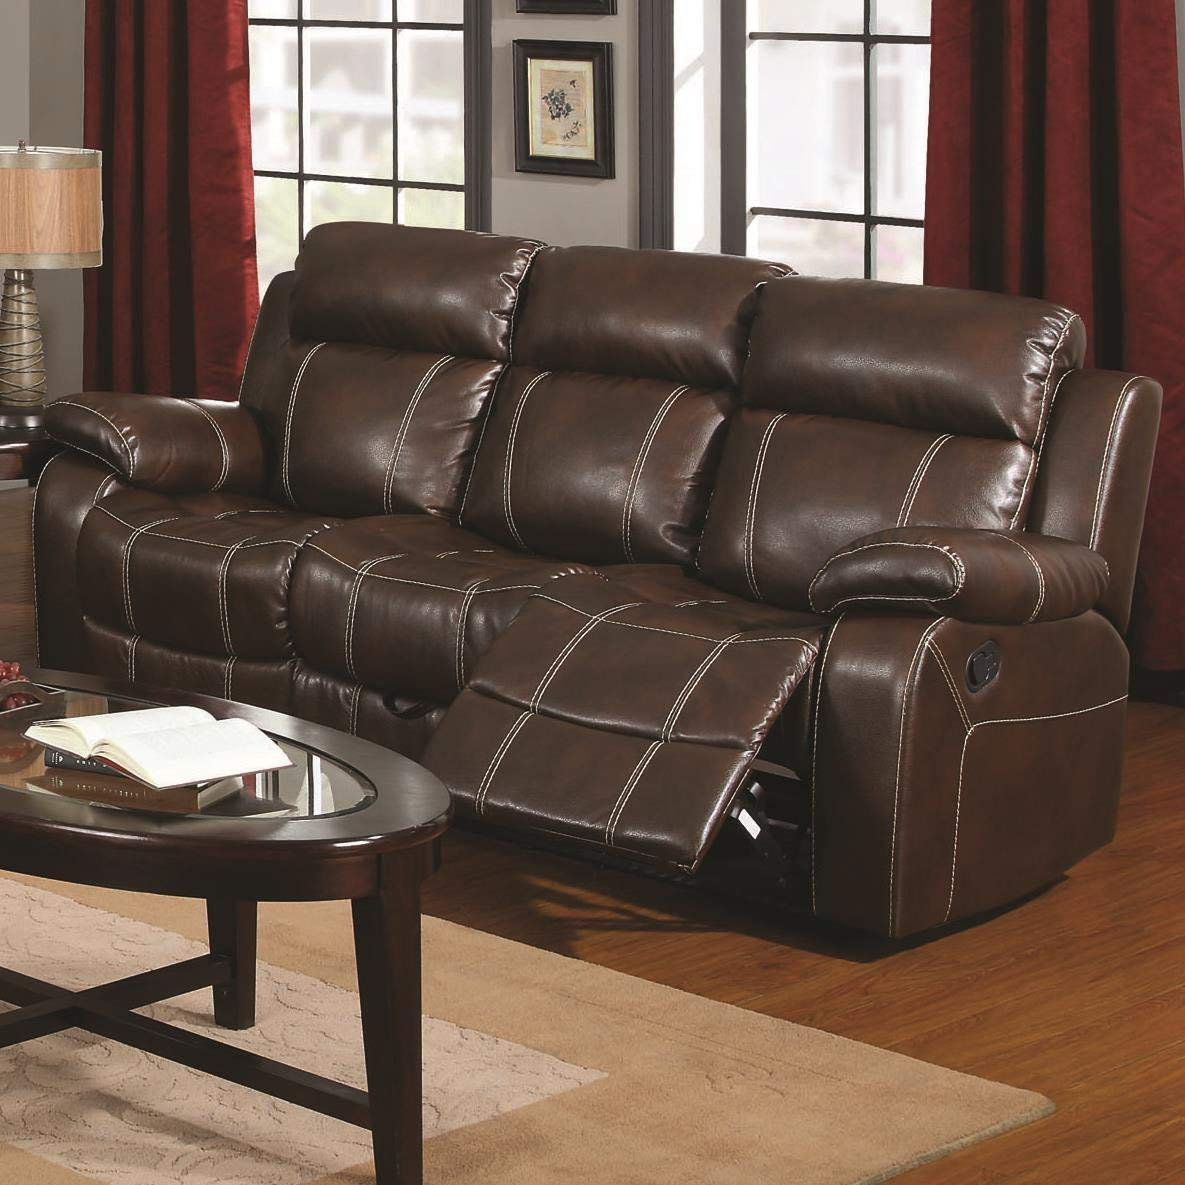 Madhu's COLLECTION Mg Décor Sofa Recliner Decor, Large, Brown